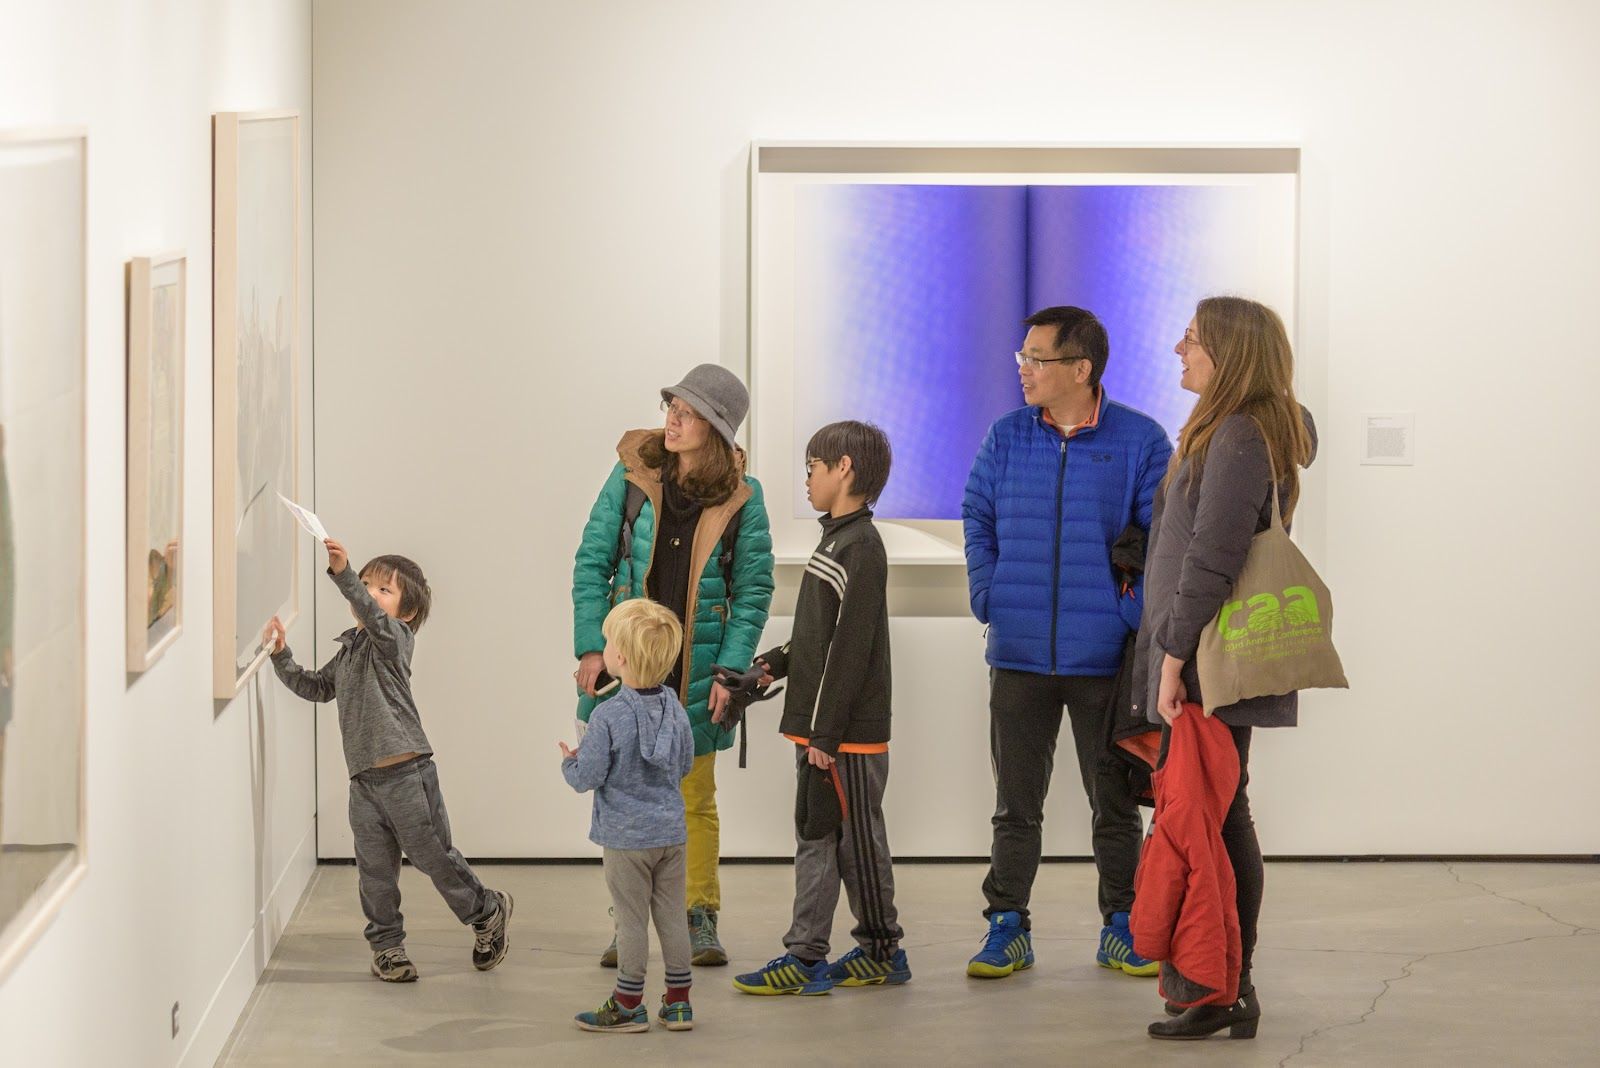 A family views an art piece in an art museum